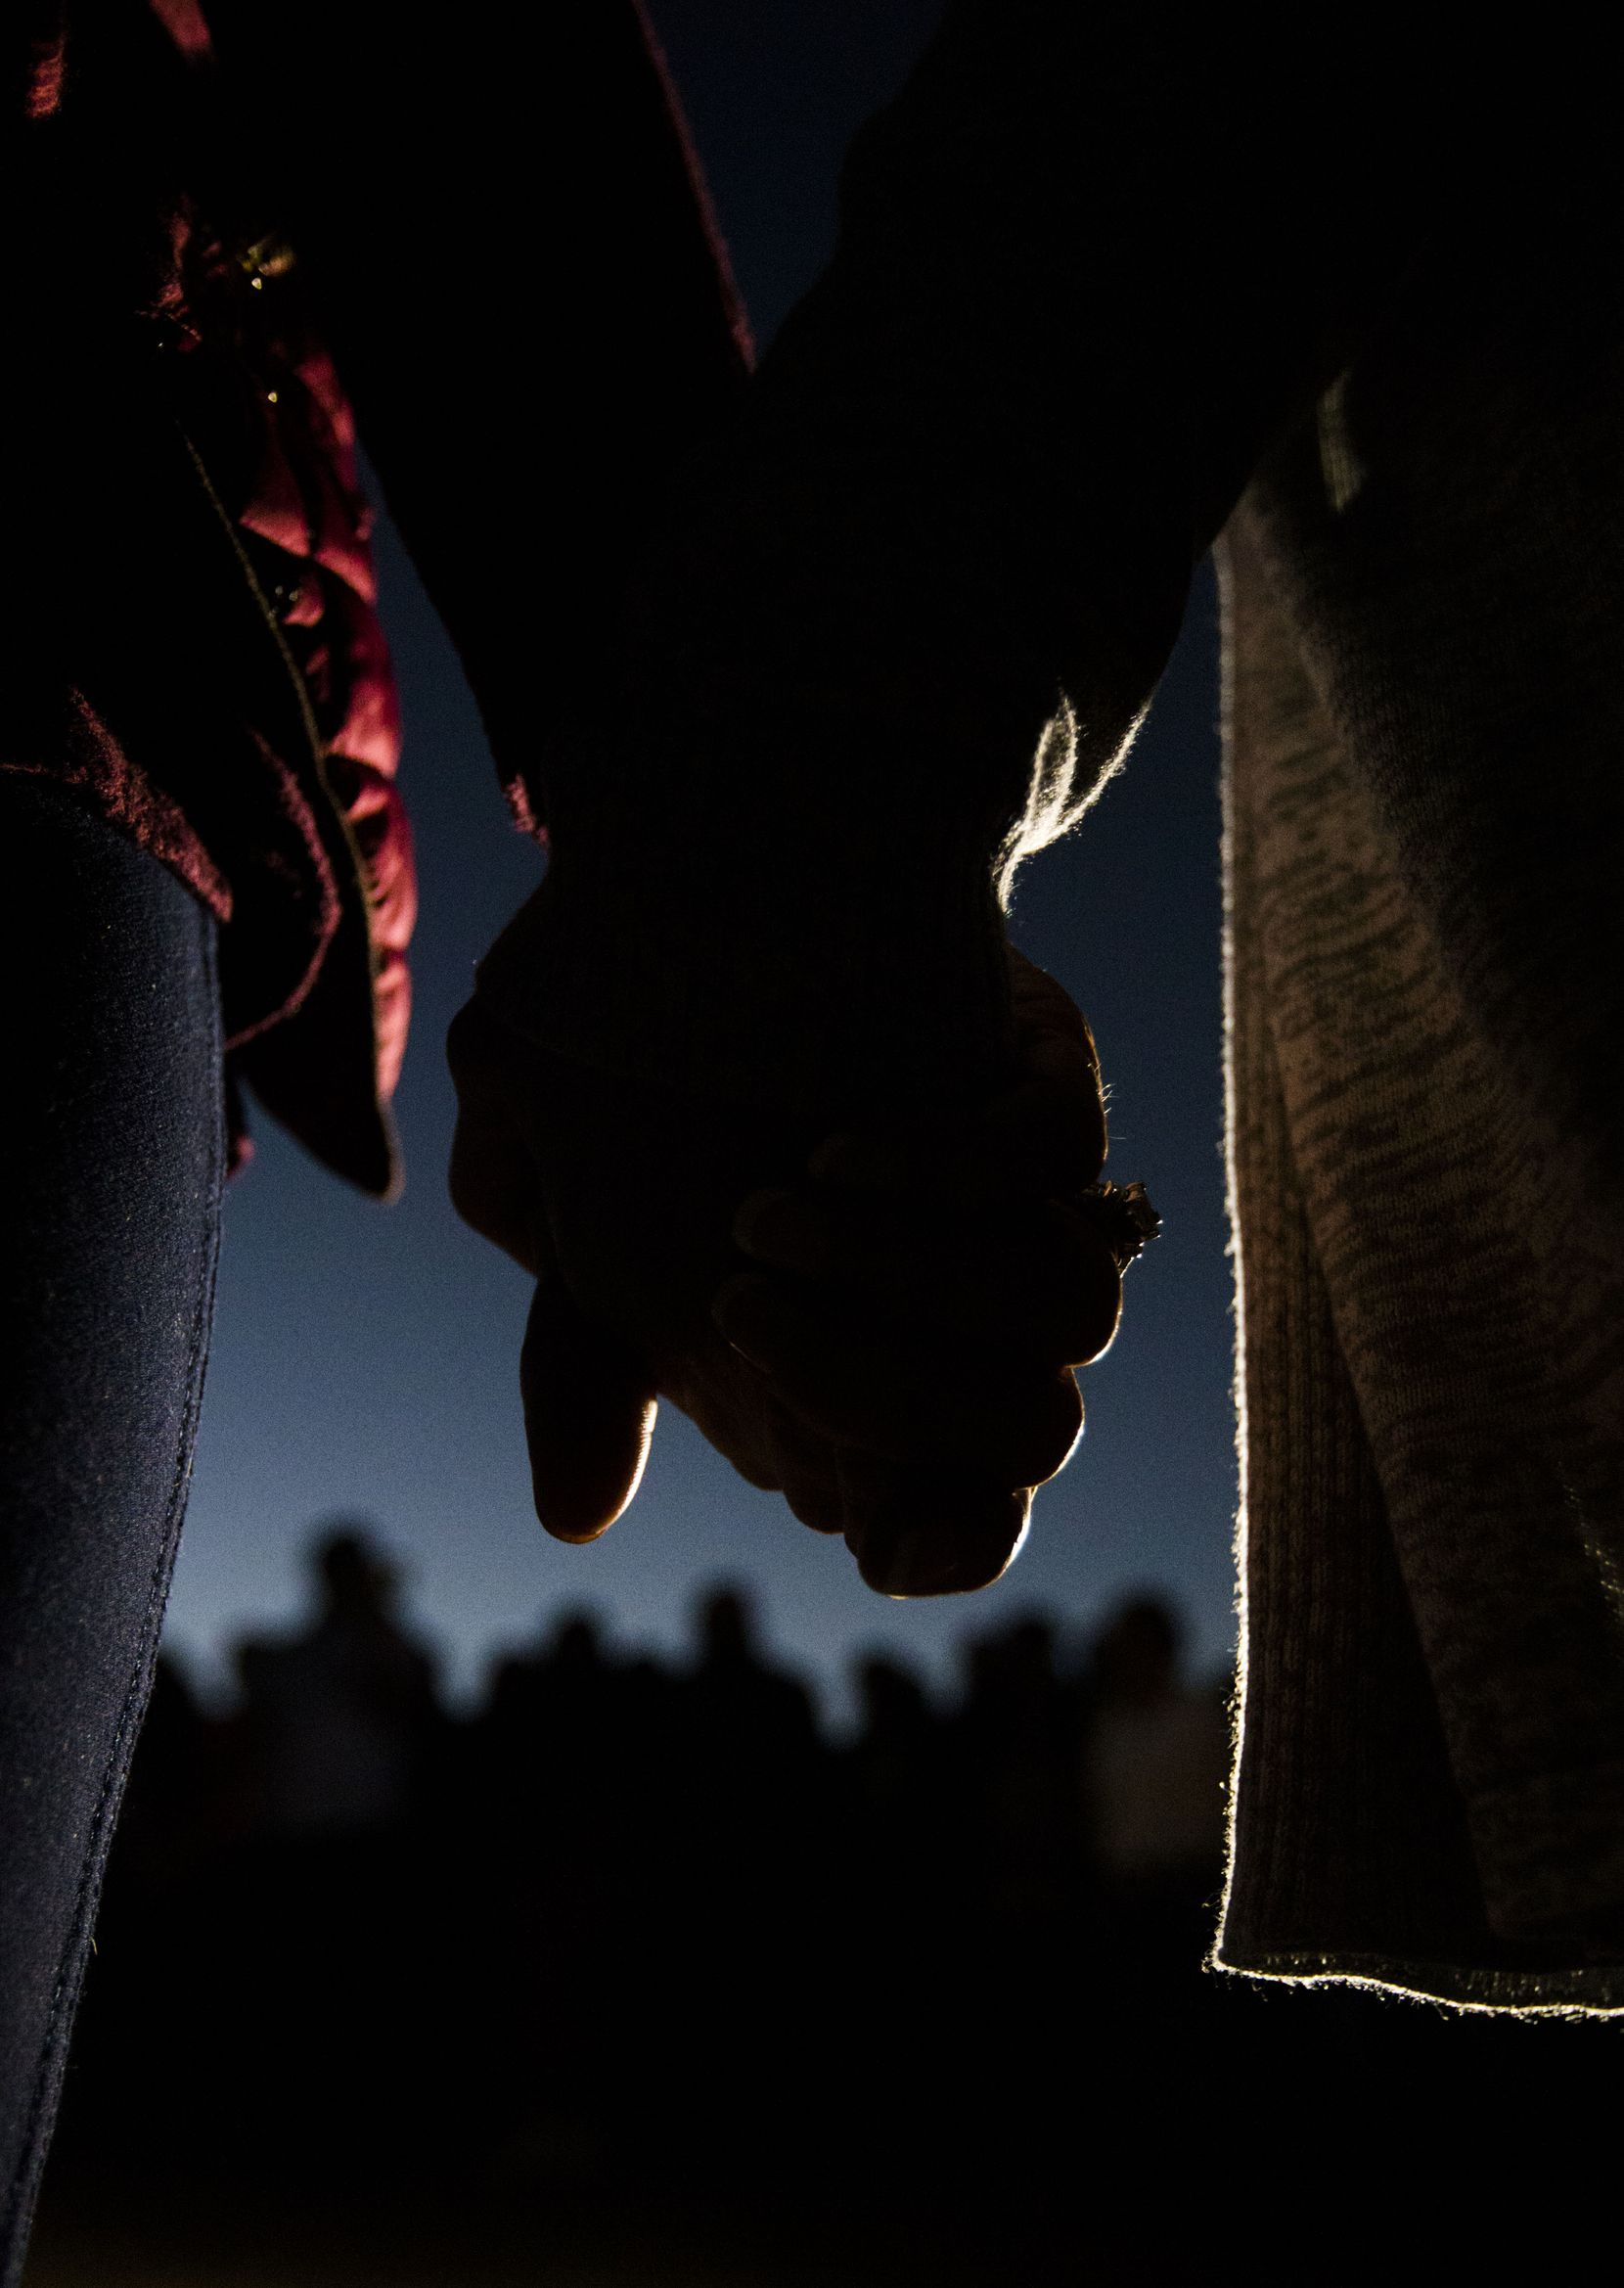 Two women held hands Sunday during a prayer vigil at a memorial for Sherin Mathews behind her home.